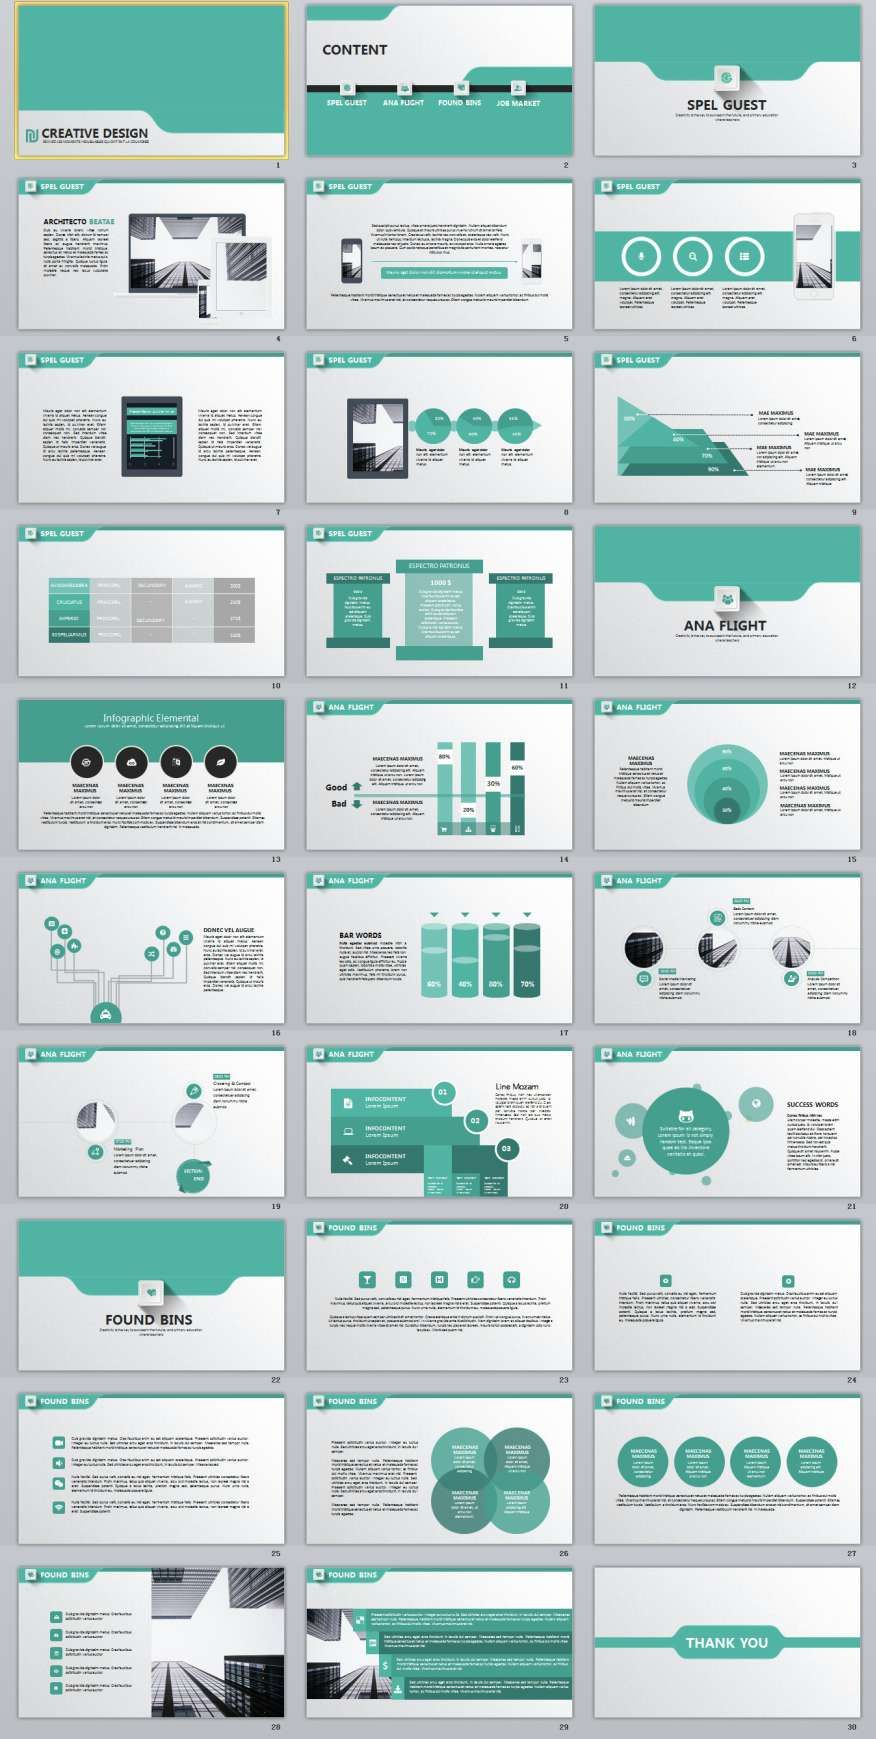 30+ Creative Design PowerPoint Template download